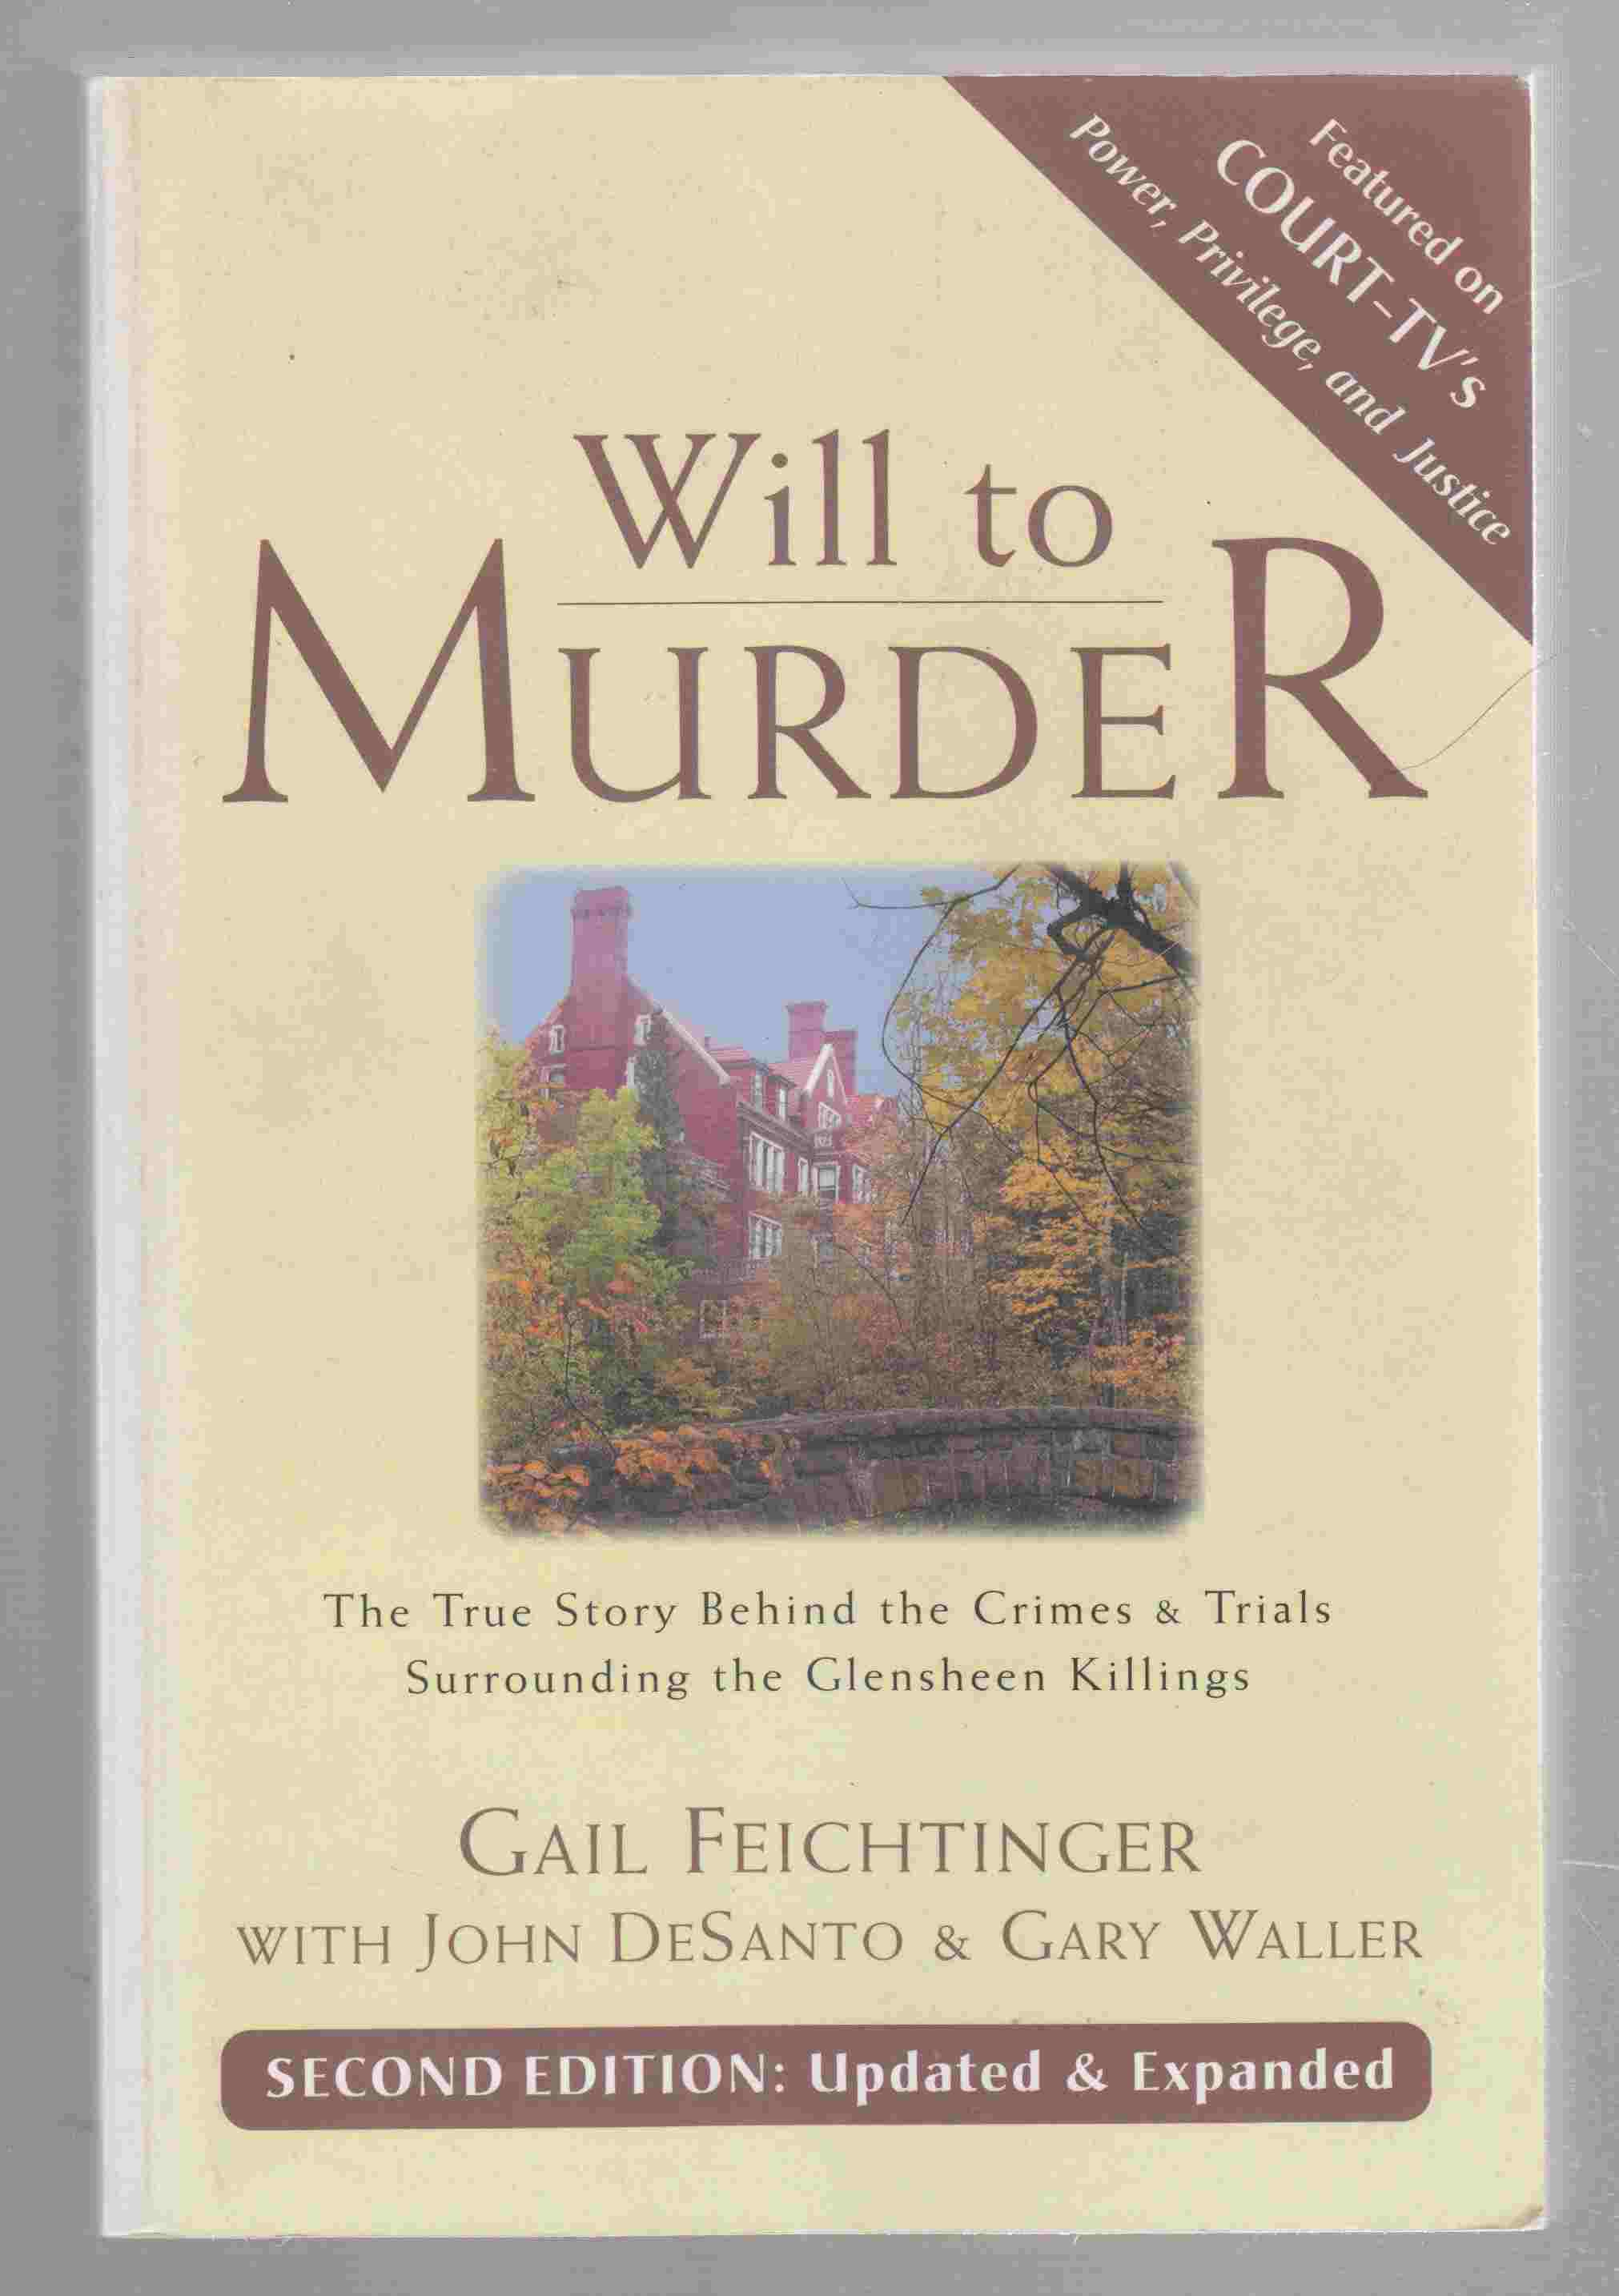 Image for Will to Murder The True Story Behind the Crimes & Trials Surrounding the Glensheen Killings